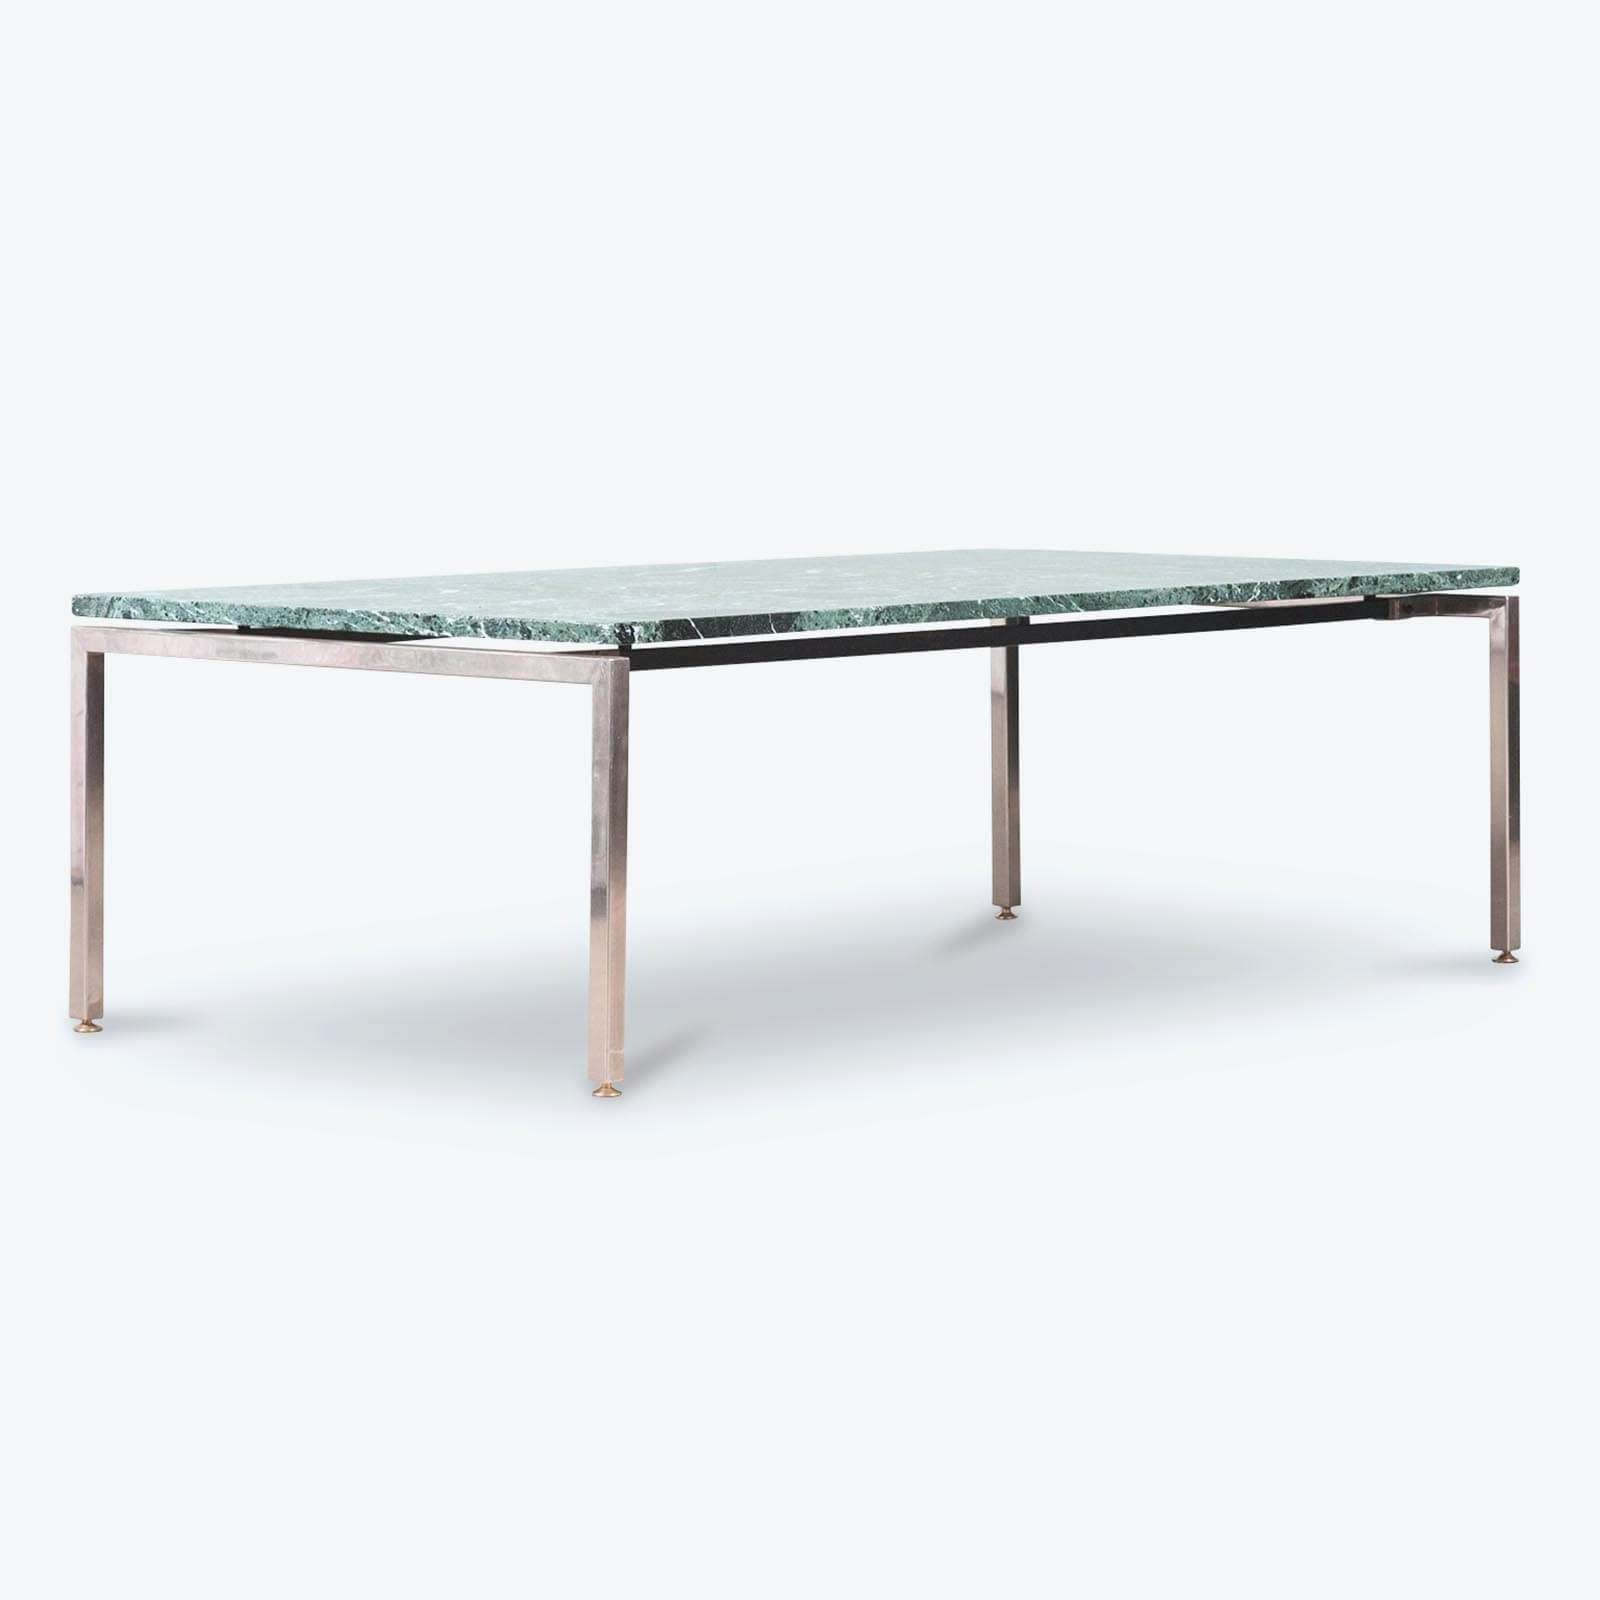 Coffee Table In Green Marble With Chrome Legs, 1960S, Netherlands Pertaining To Most Current Chrome Leg Coffee Tables (View 4 of 20)